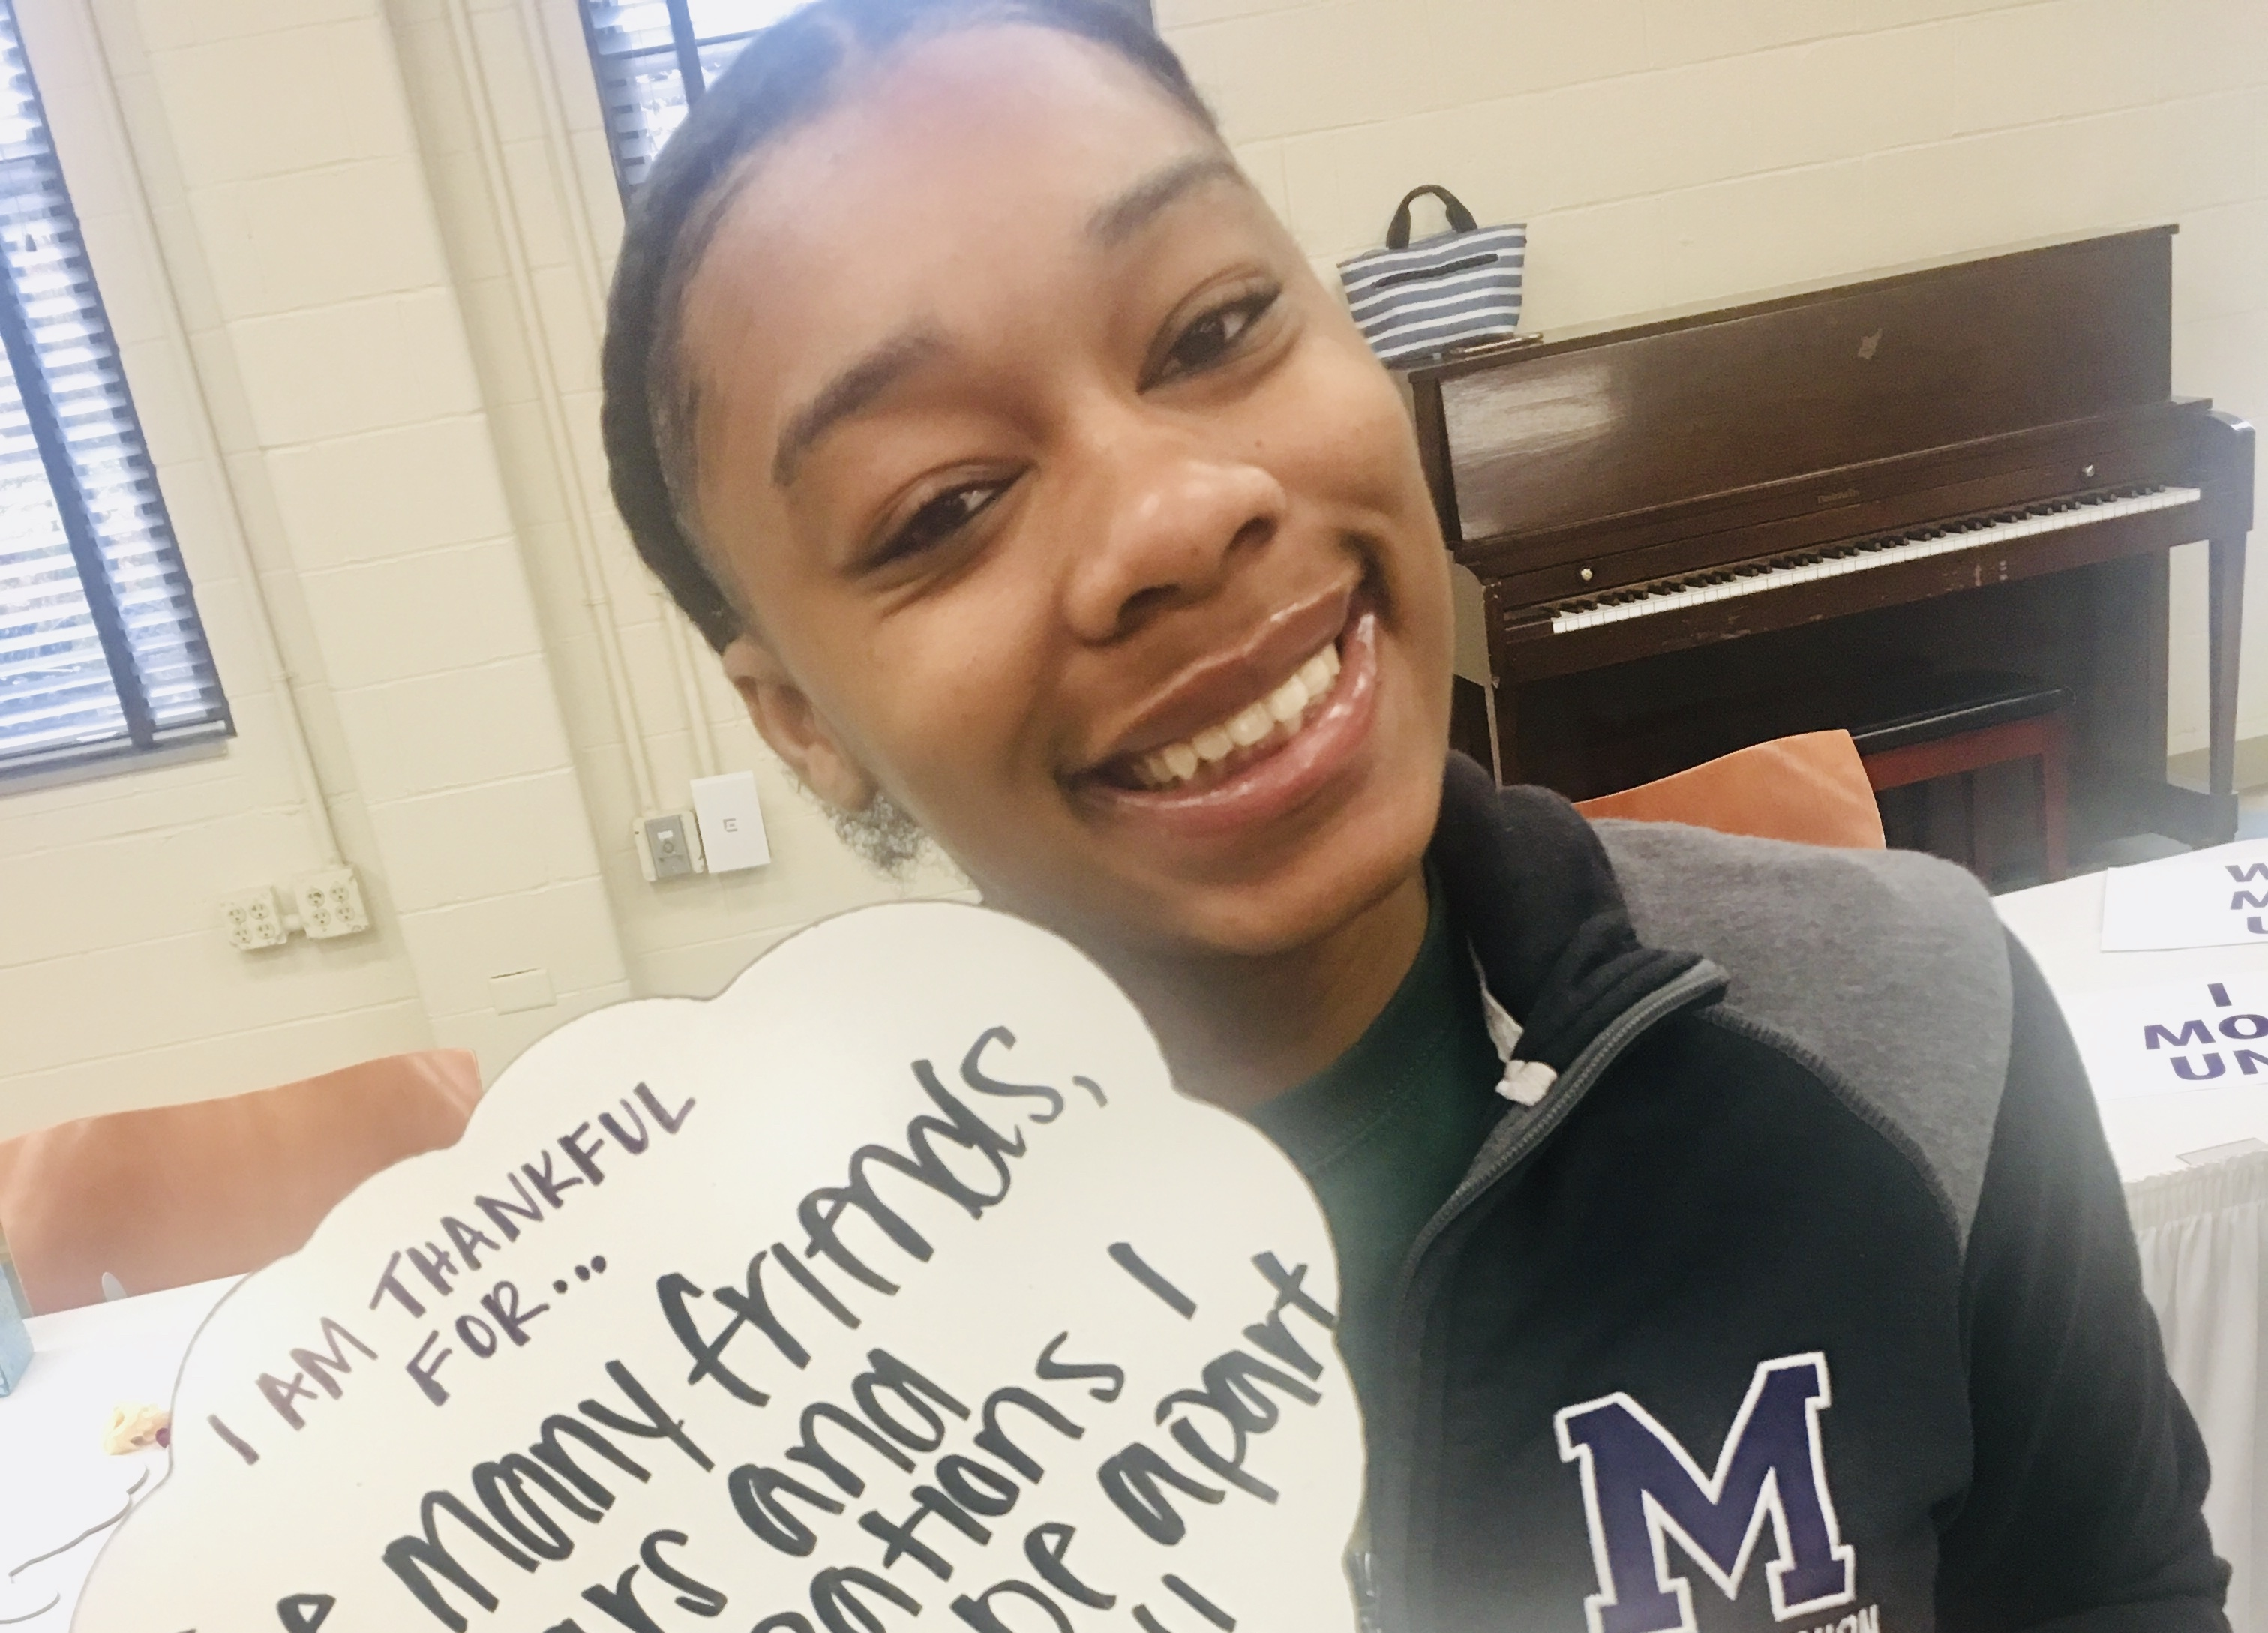 Mount Union student Mani shares why she is thankful for donors